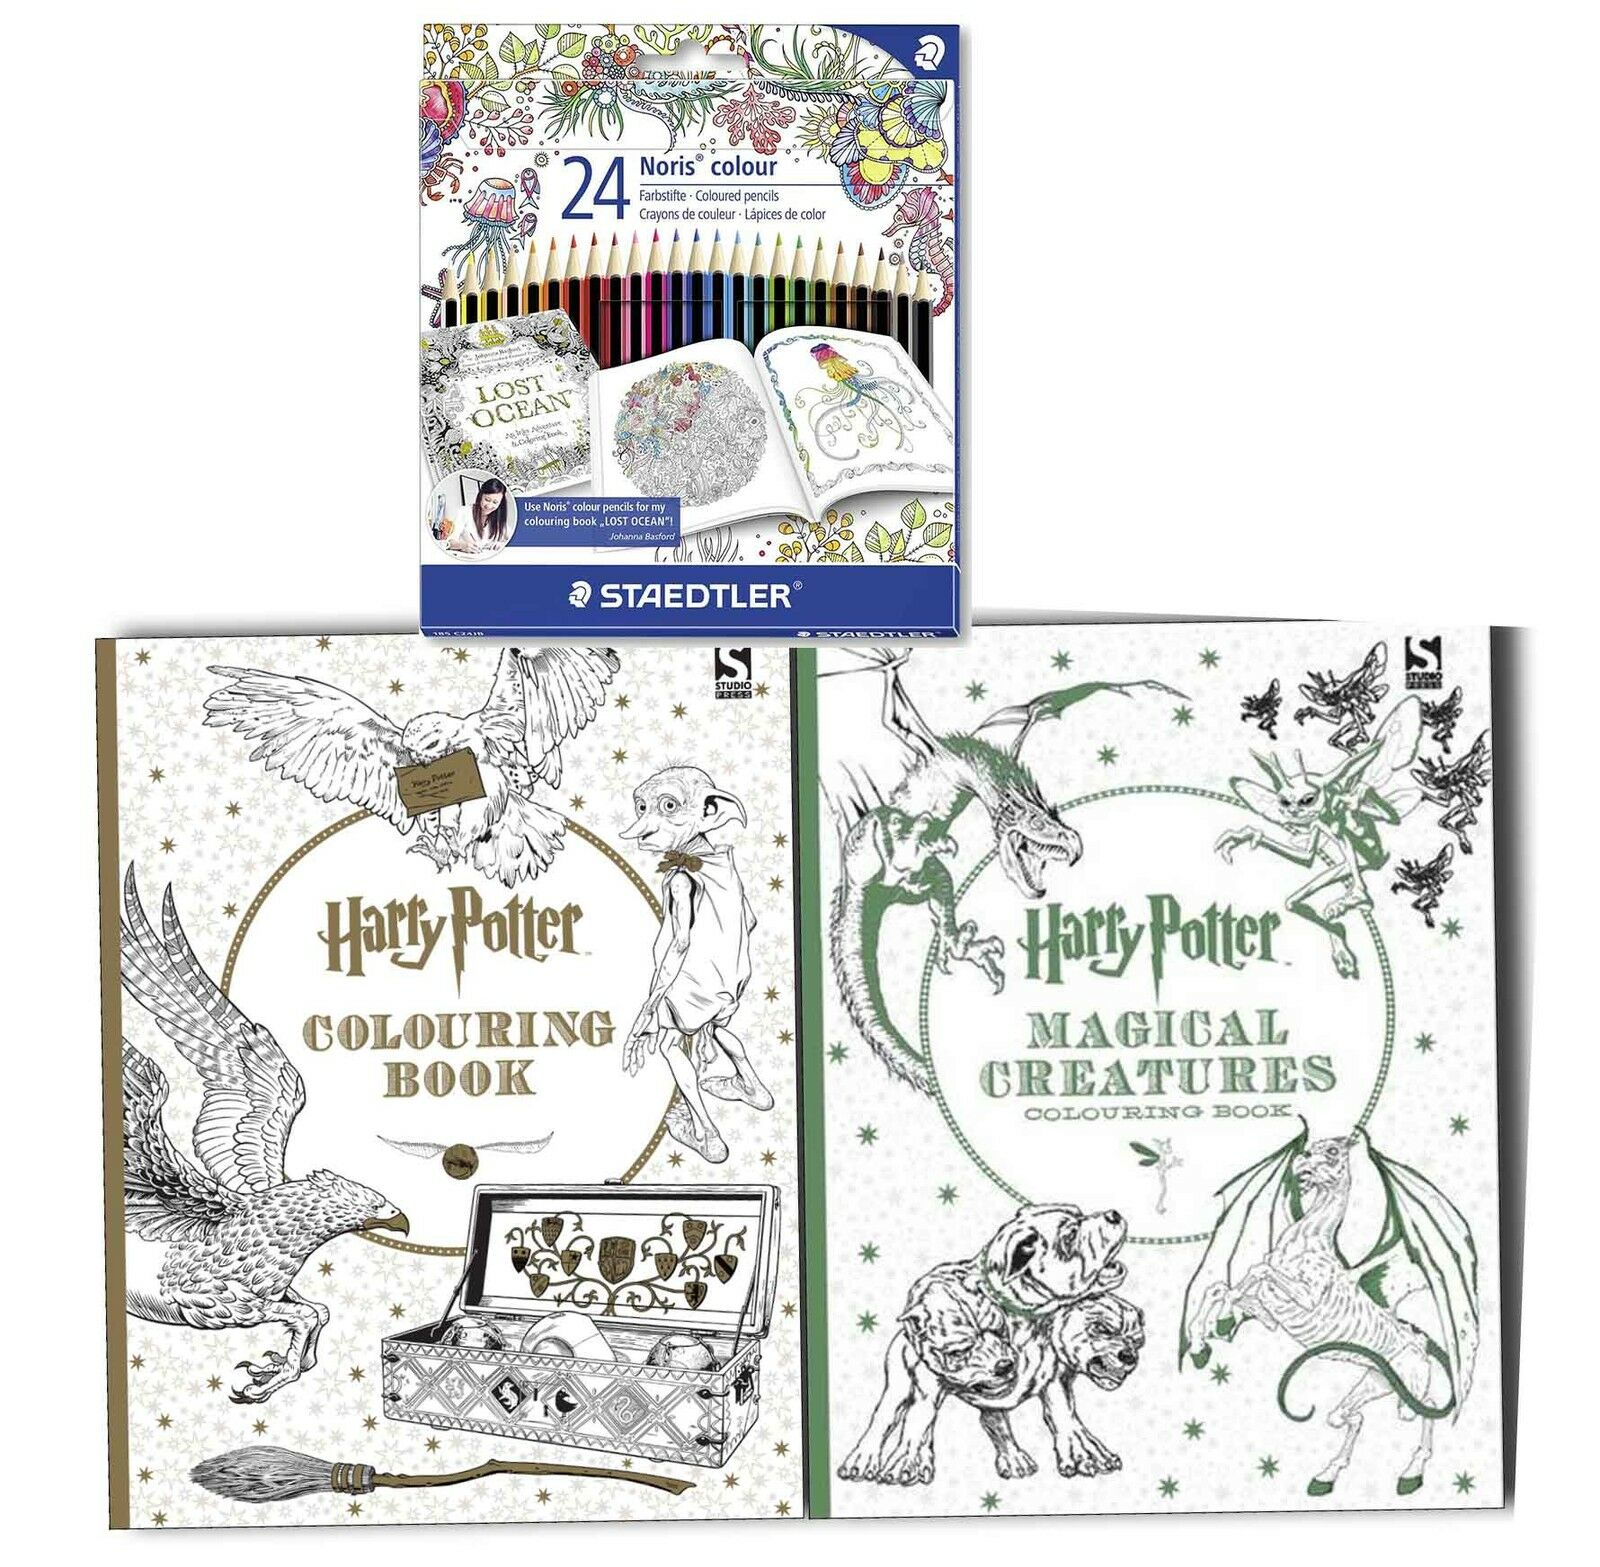 Harry Potter Book Lengths Pages : Harry potter colouoring books with staedtler colour